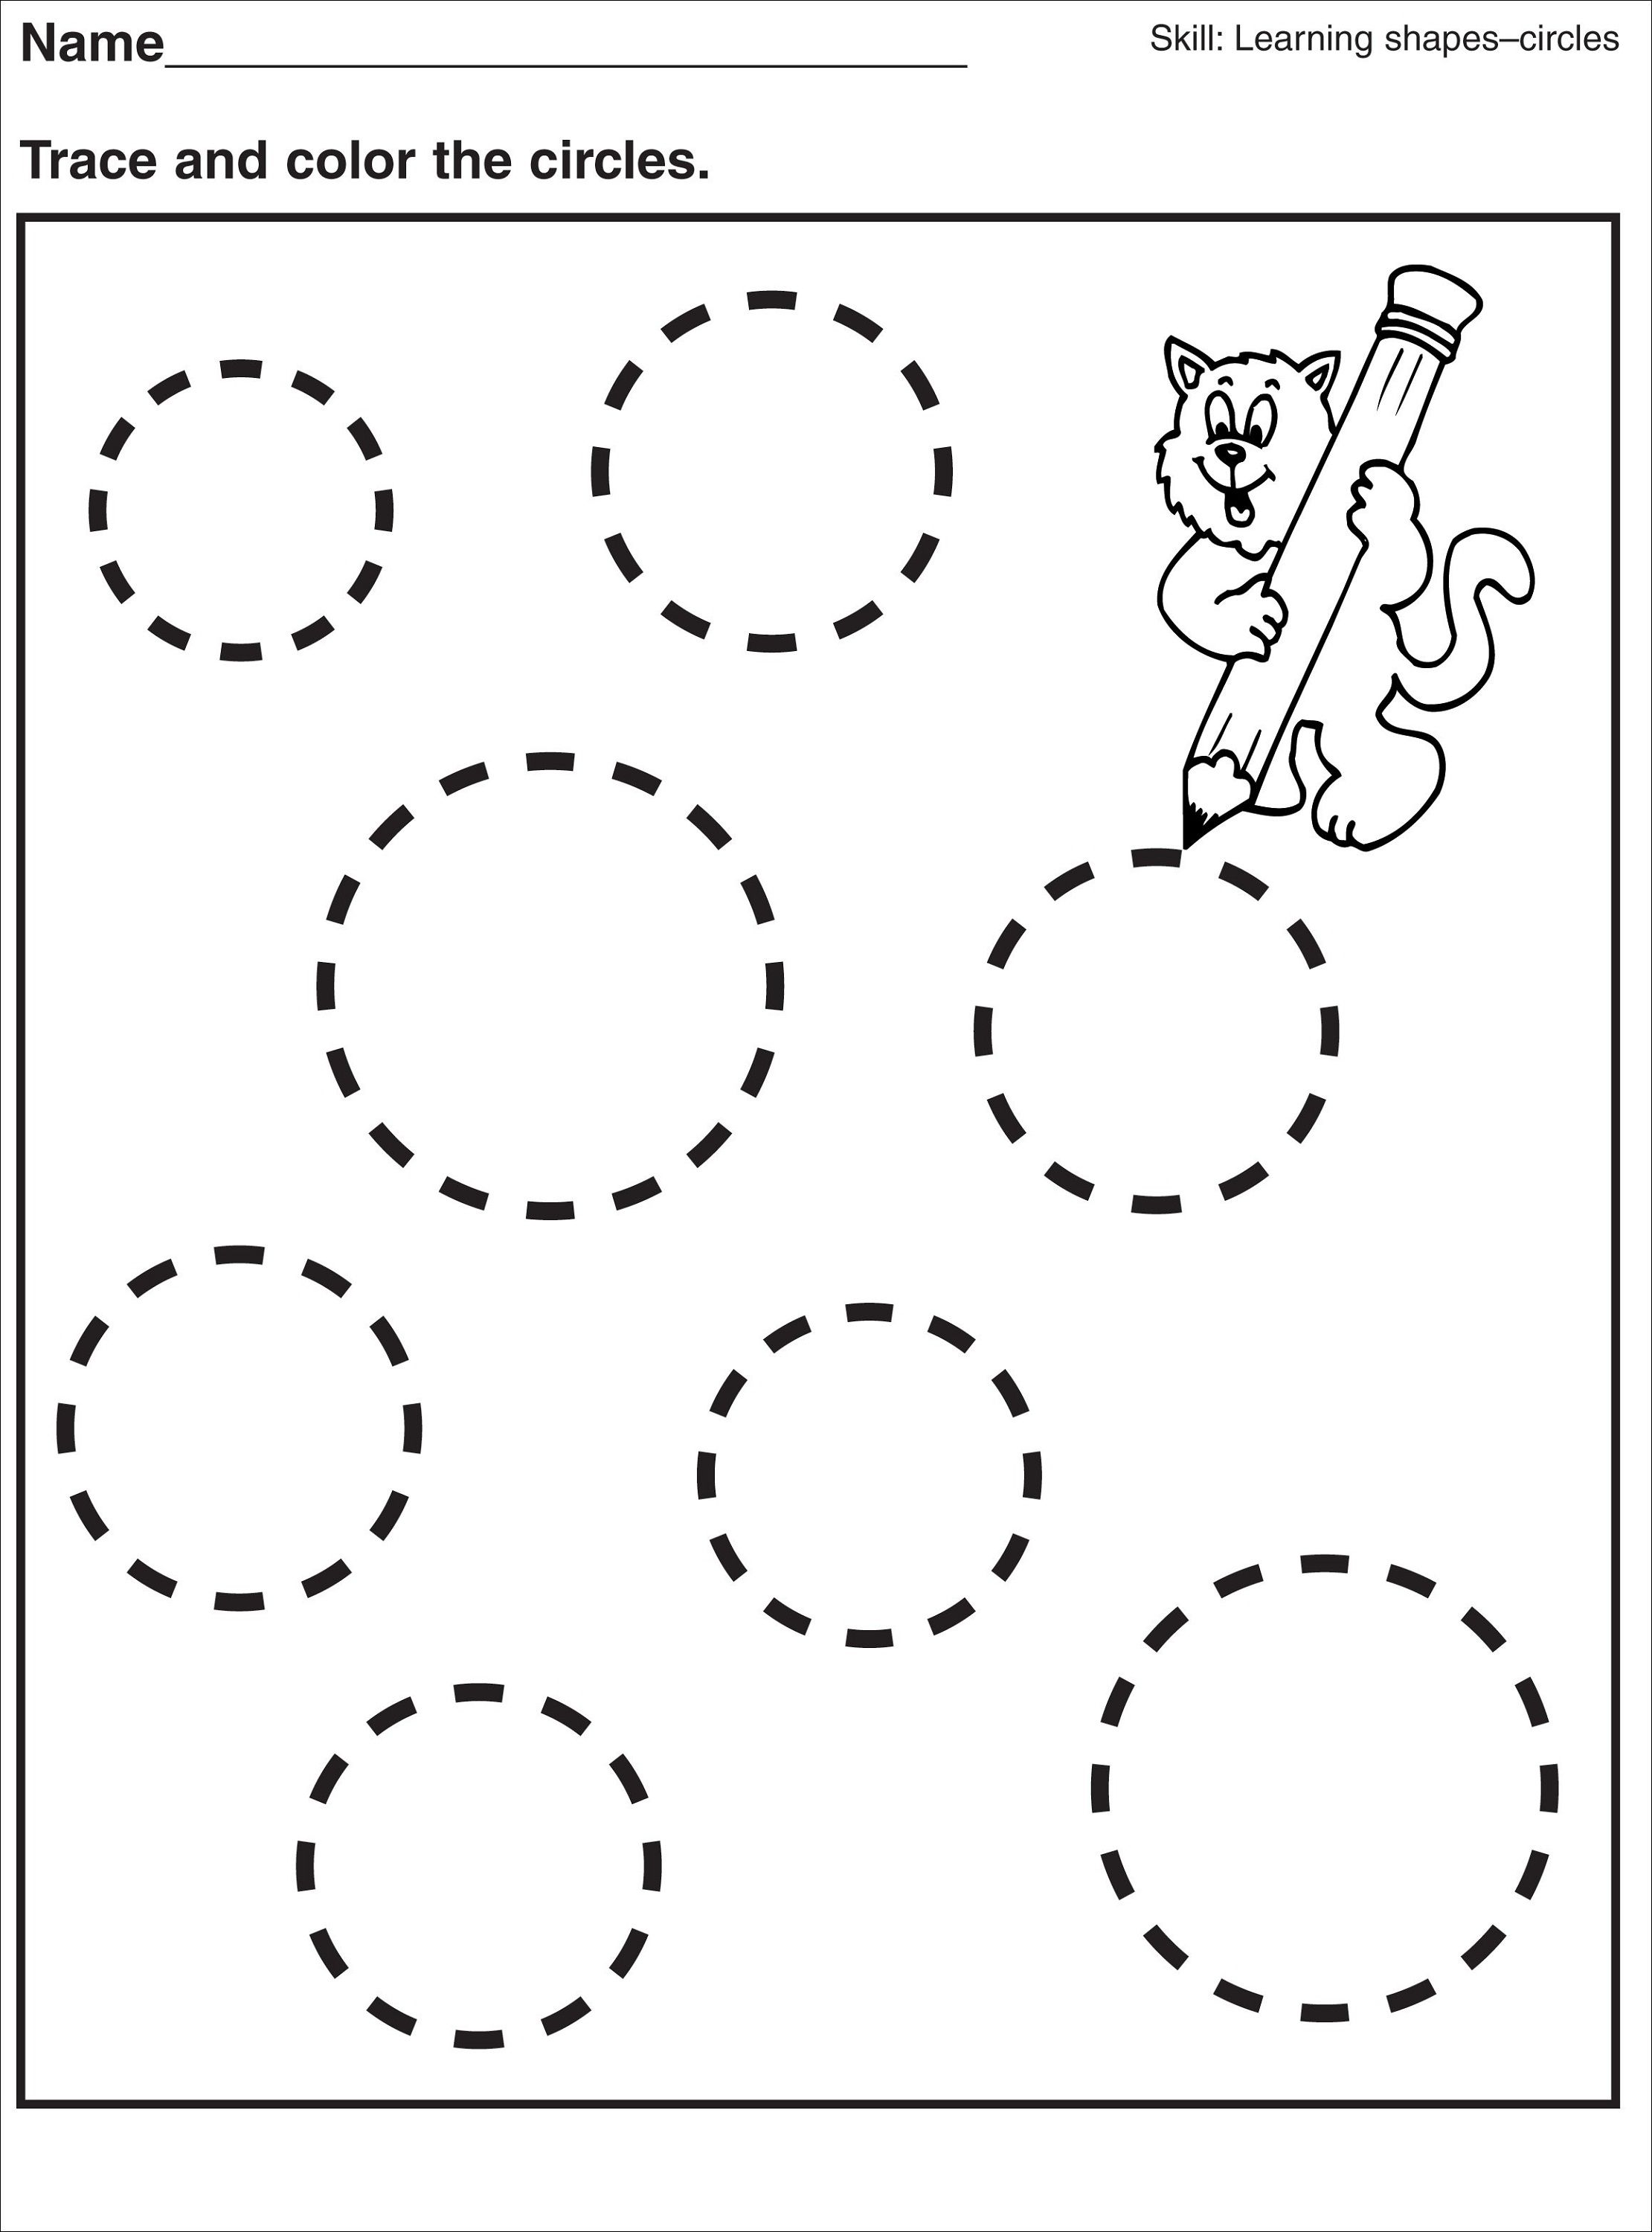 Uncategorized Circles Worksheet tracing circle worksheets for preschool activity shelter kids shelter